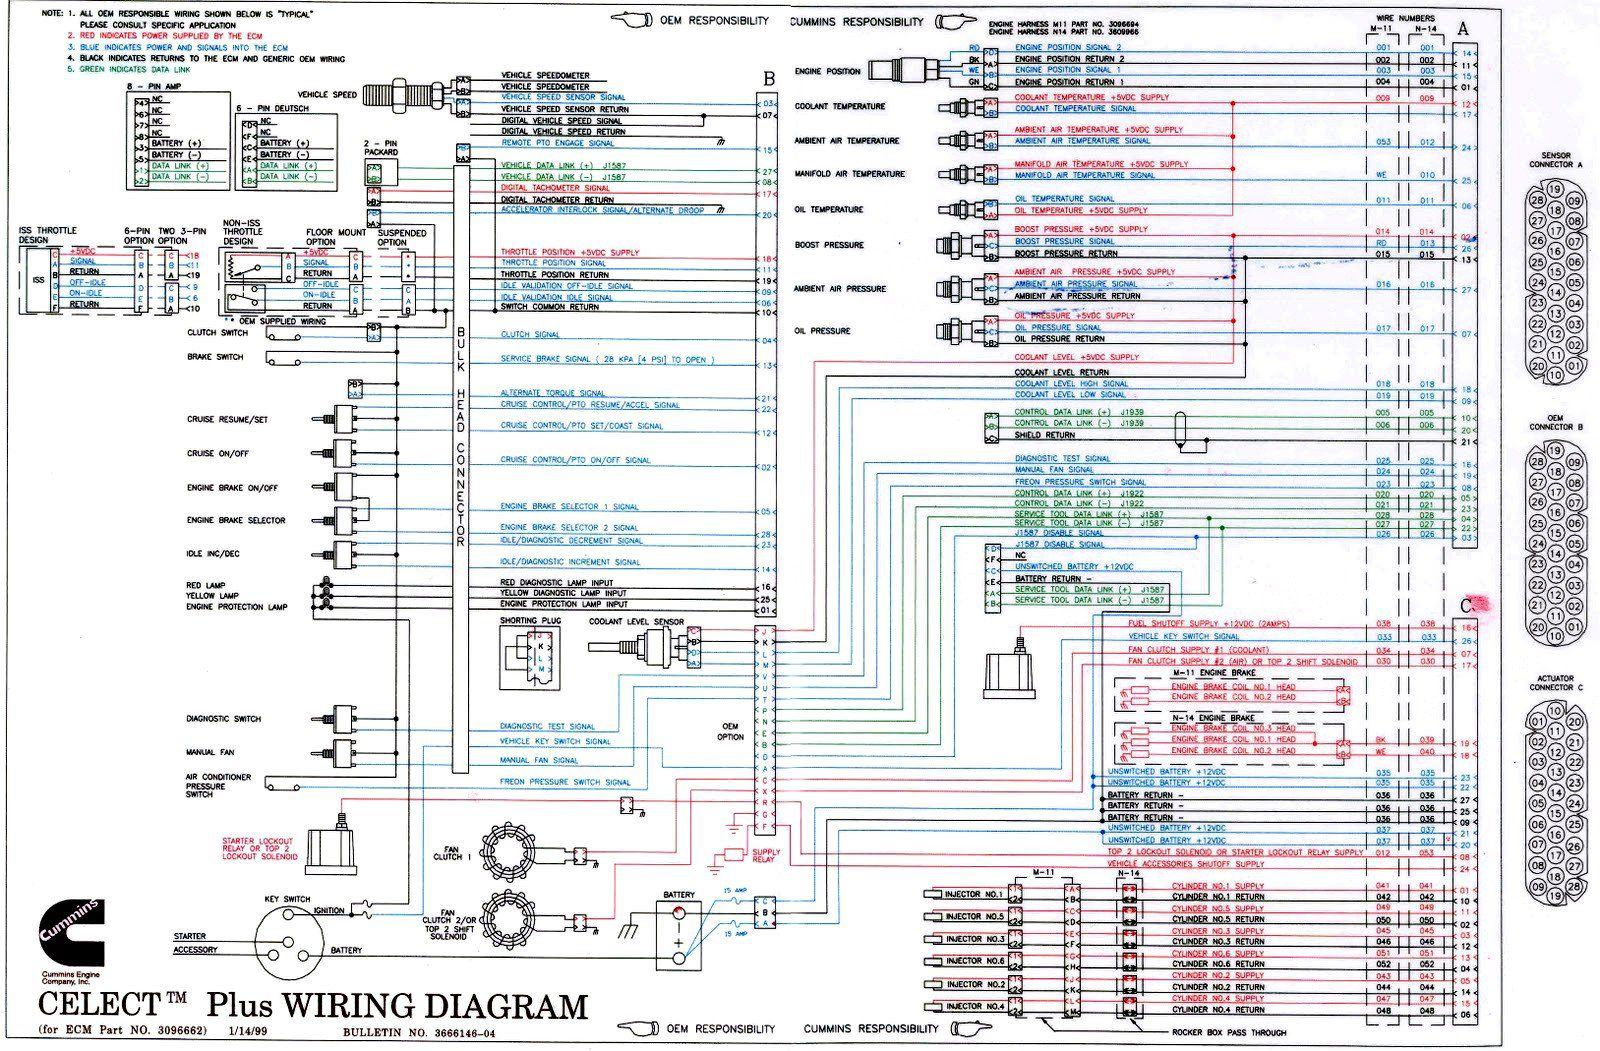 n14 celect wiring diagram Collection-Cummins N14 Celect Plus Wiring Diagram to 100 Ideas Diagrams isx 40 N14 Celect Wiring 9-p